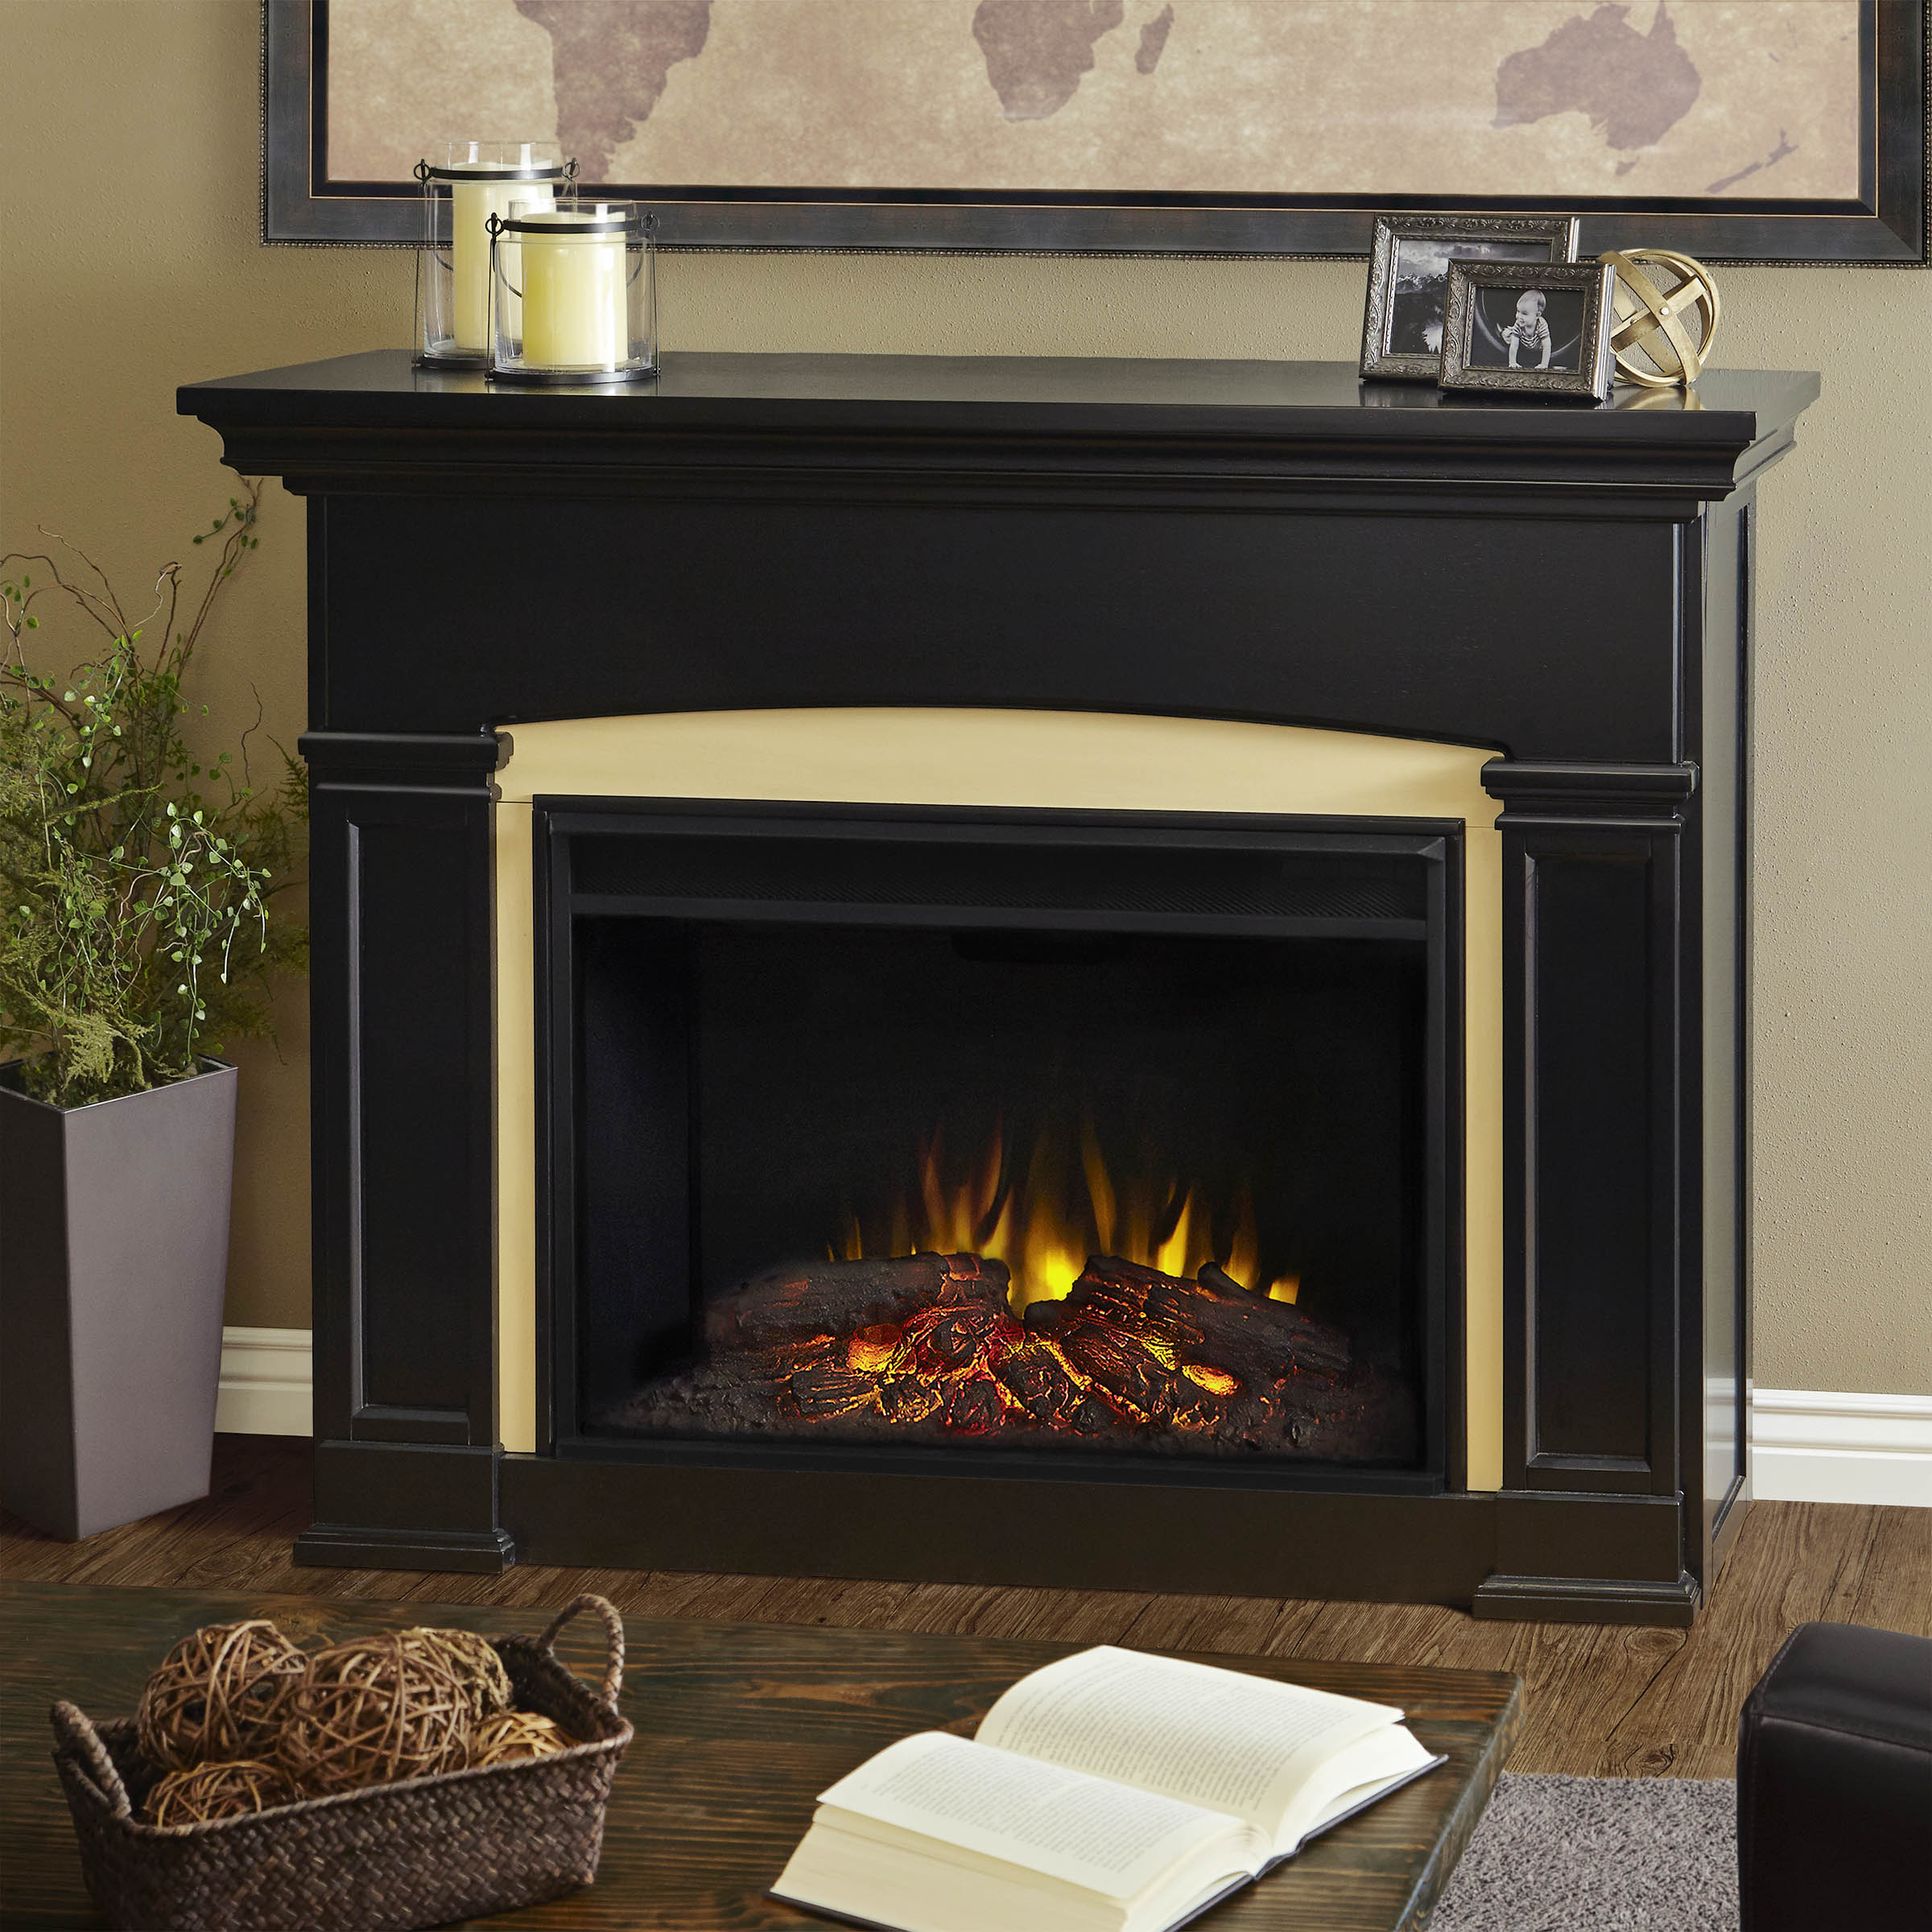 The Holbrook Grand Black Electric Fireplace